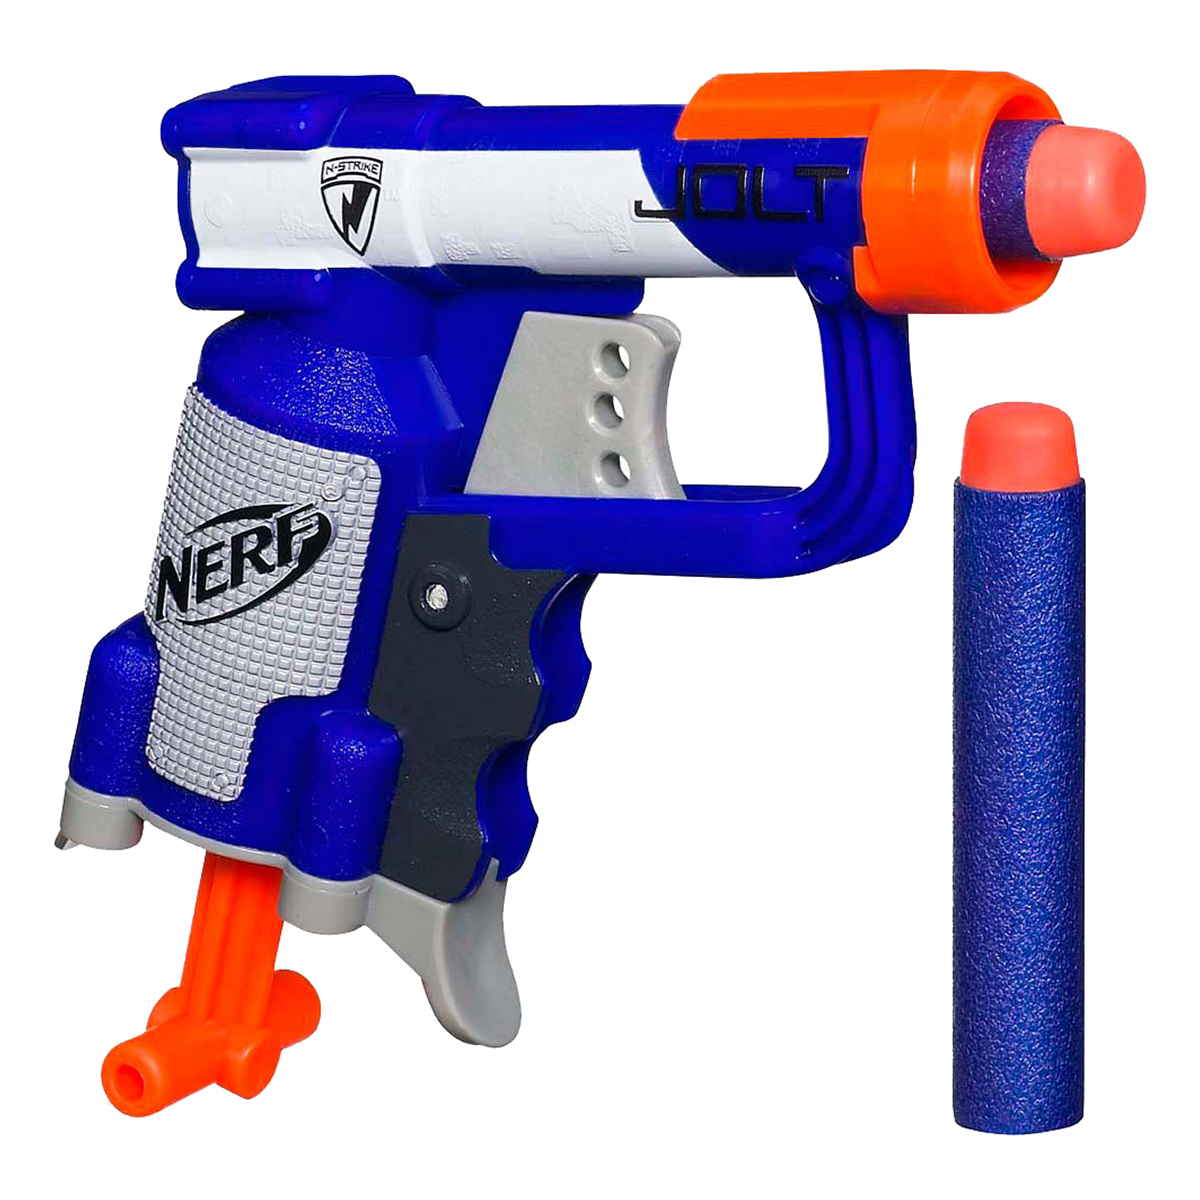 Blaster Nerf N-Strike Jolt 0707 imagine 2021